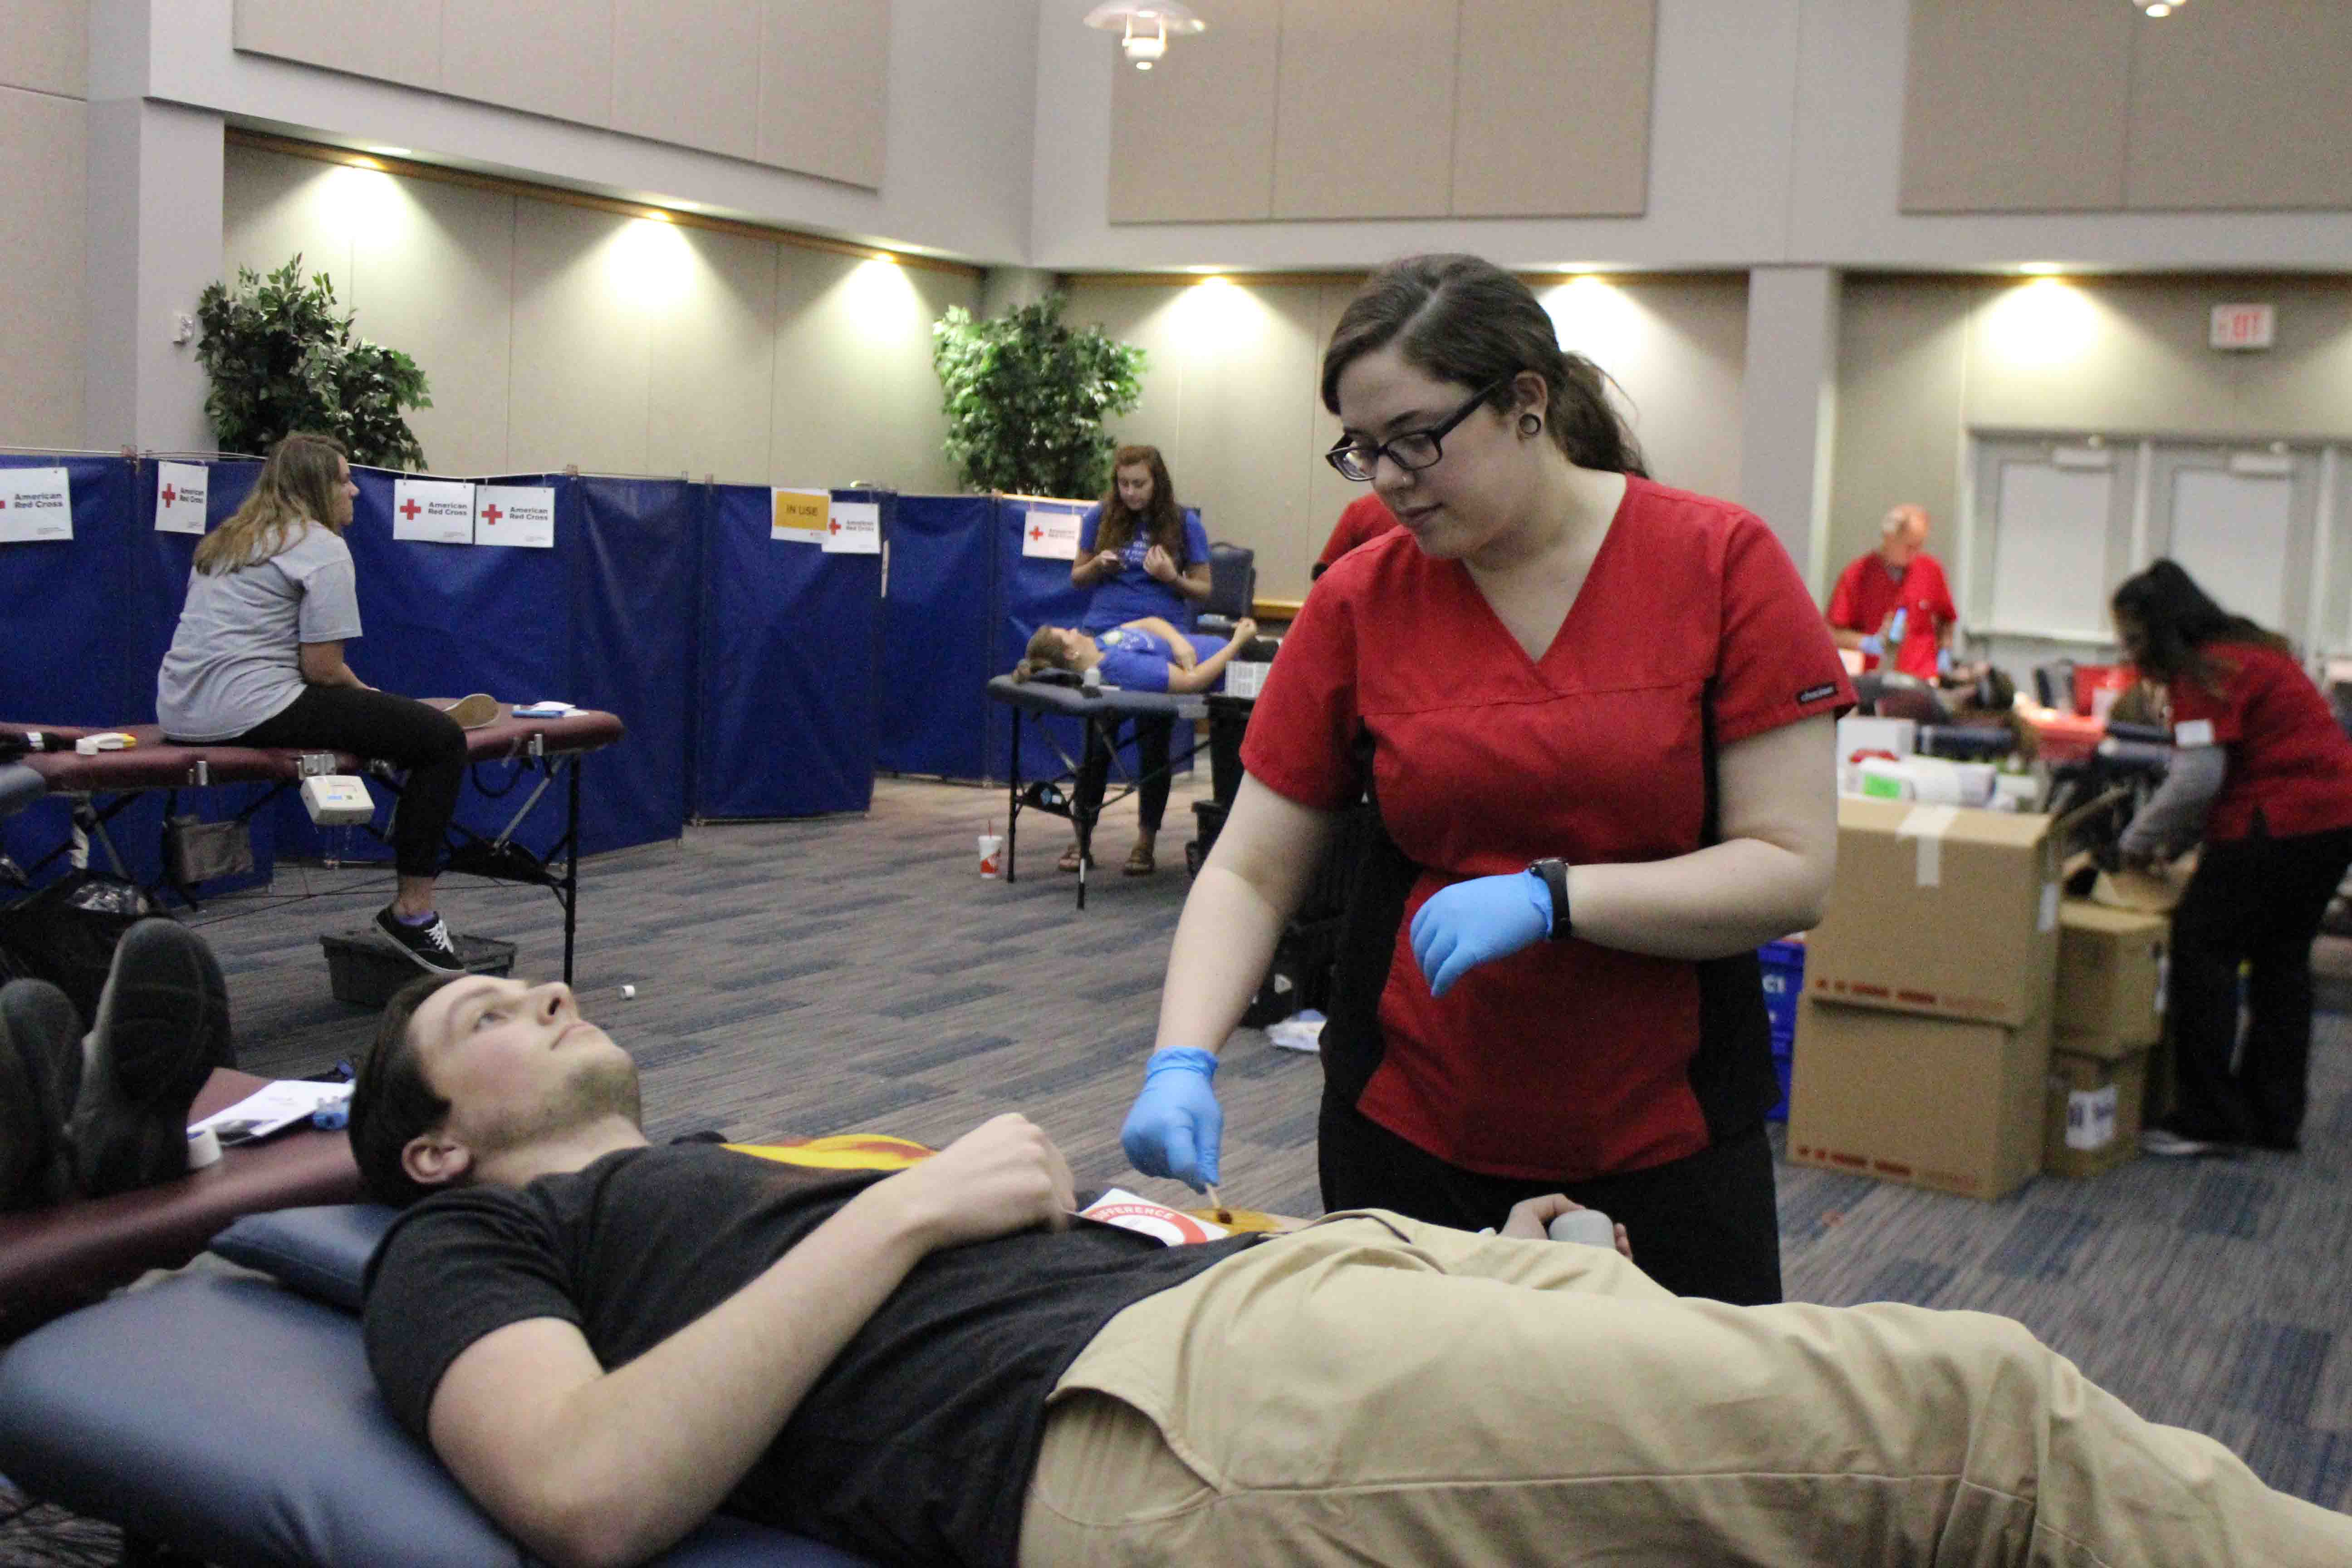 Ethan Ducheon, a sophomore biology major, gives back to his community by donating blood to the Red Cross Foundation on March 21st.